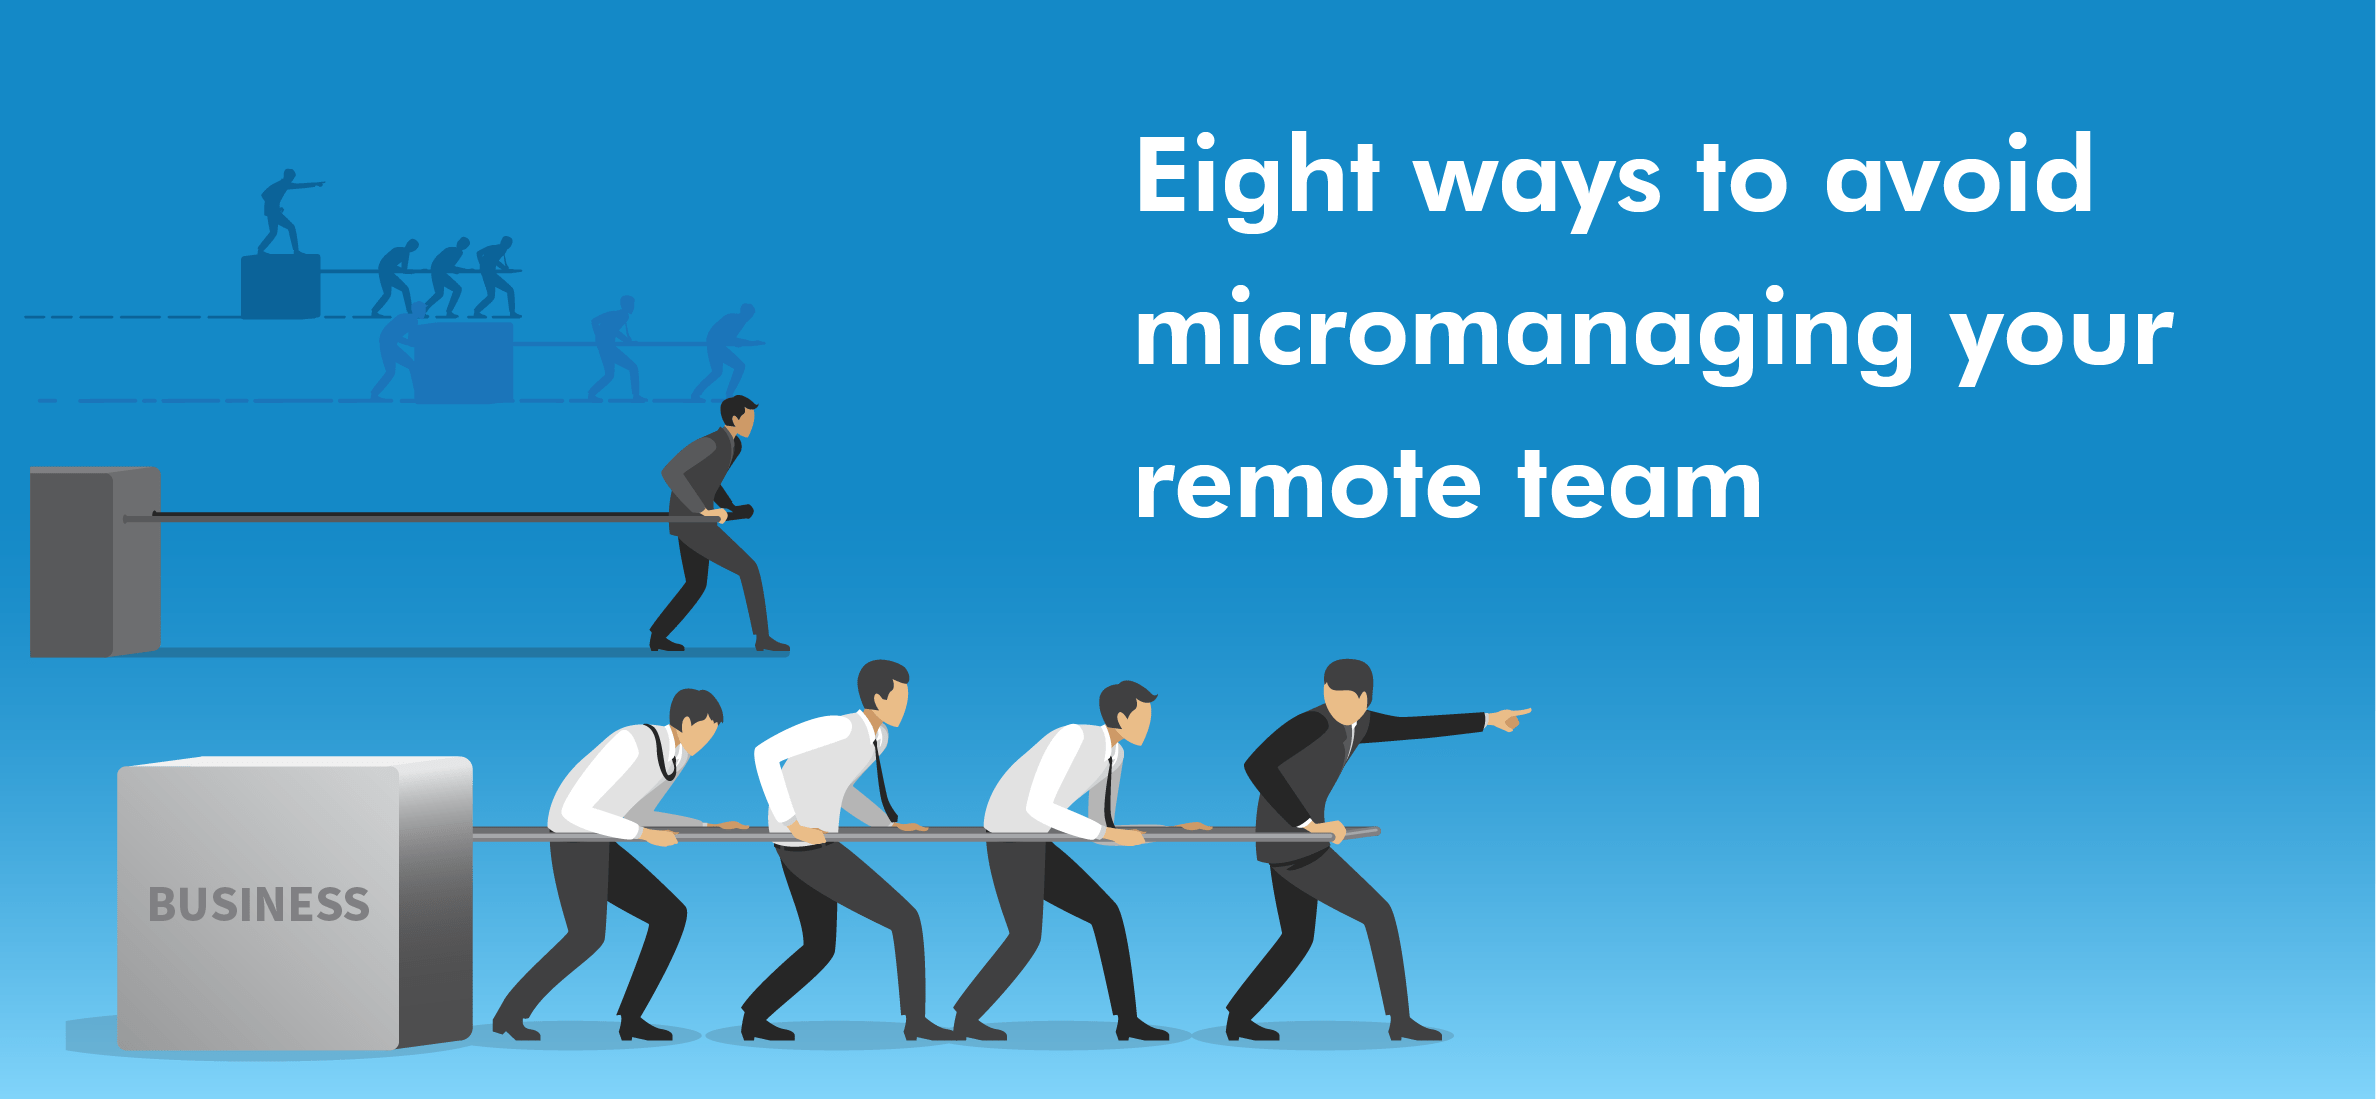 Eight ways to avoid micromanaging your remote team